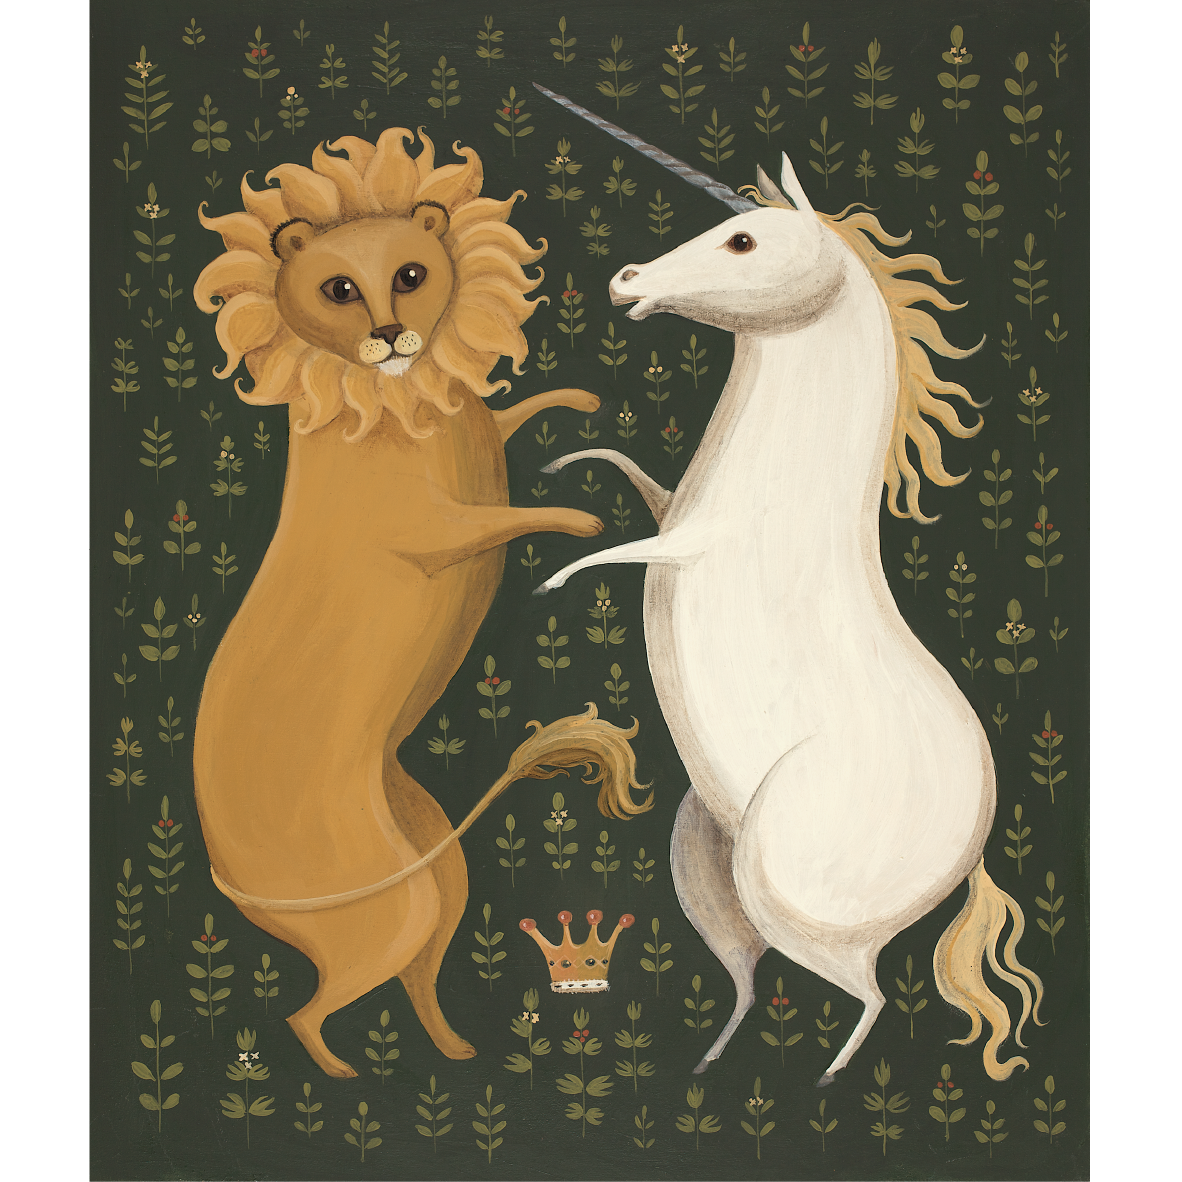 The Lion & the Unicorn Catriona Hall print